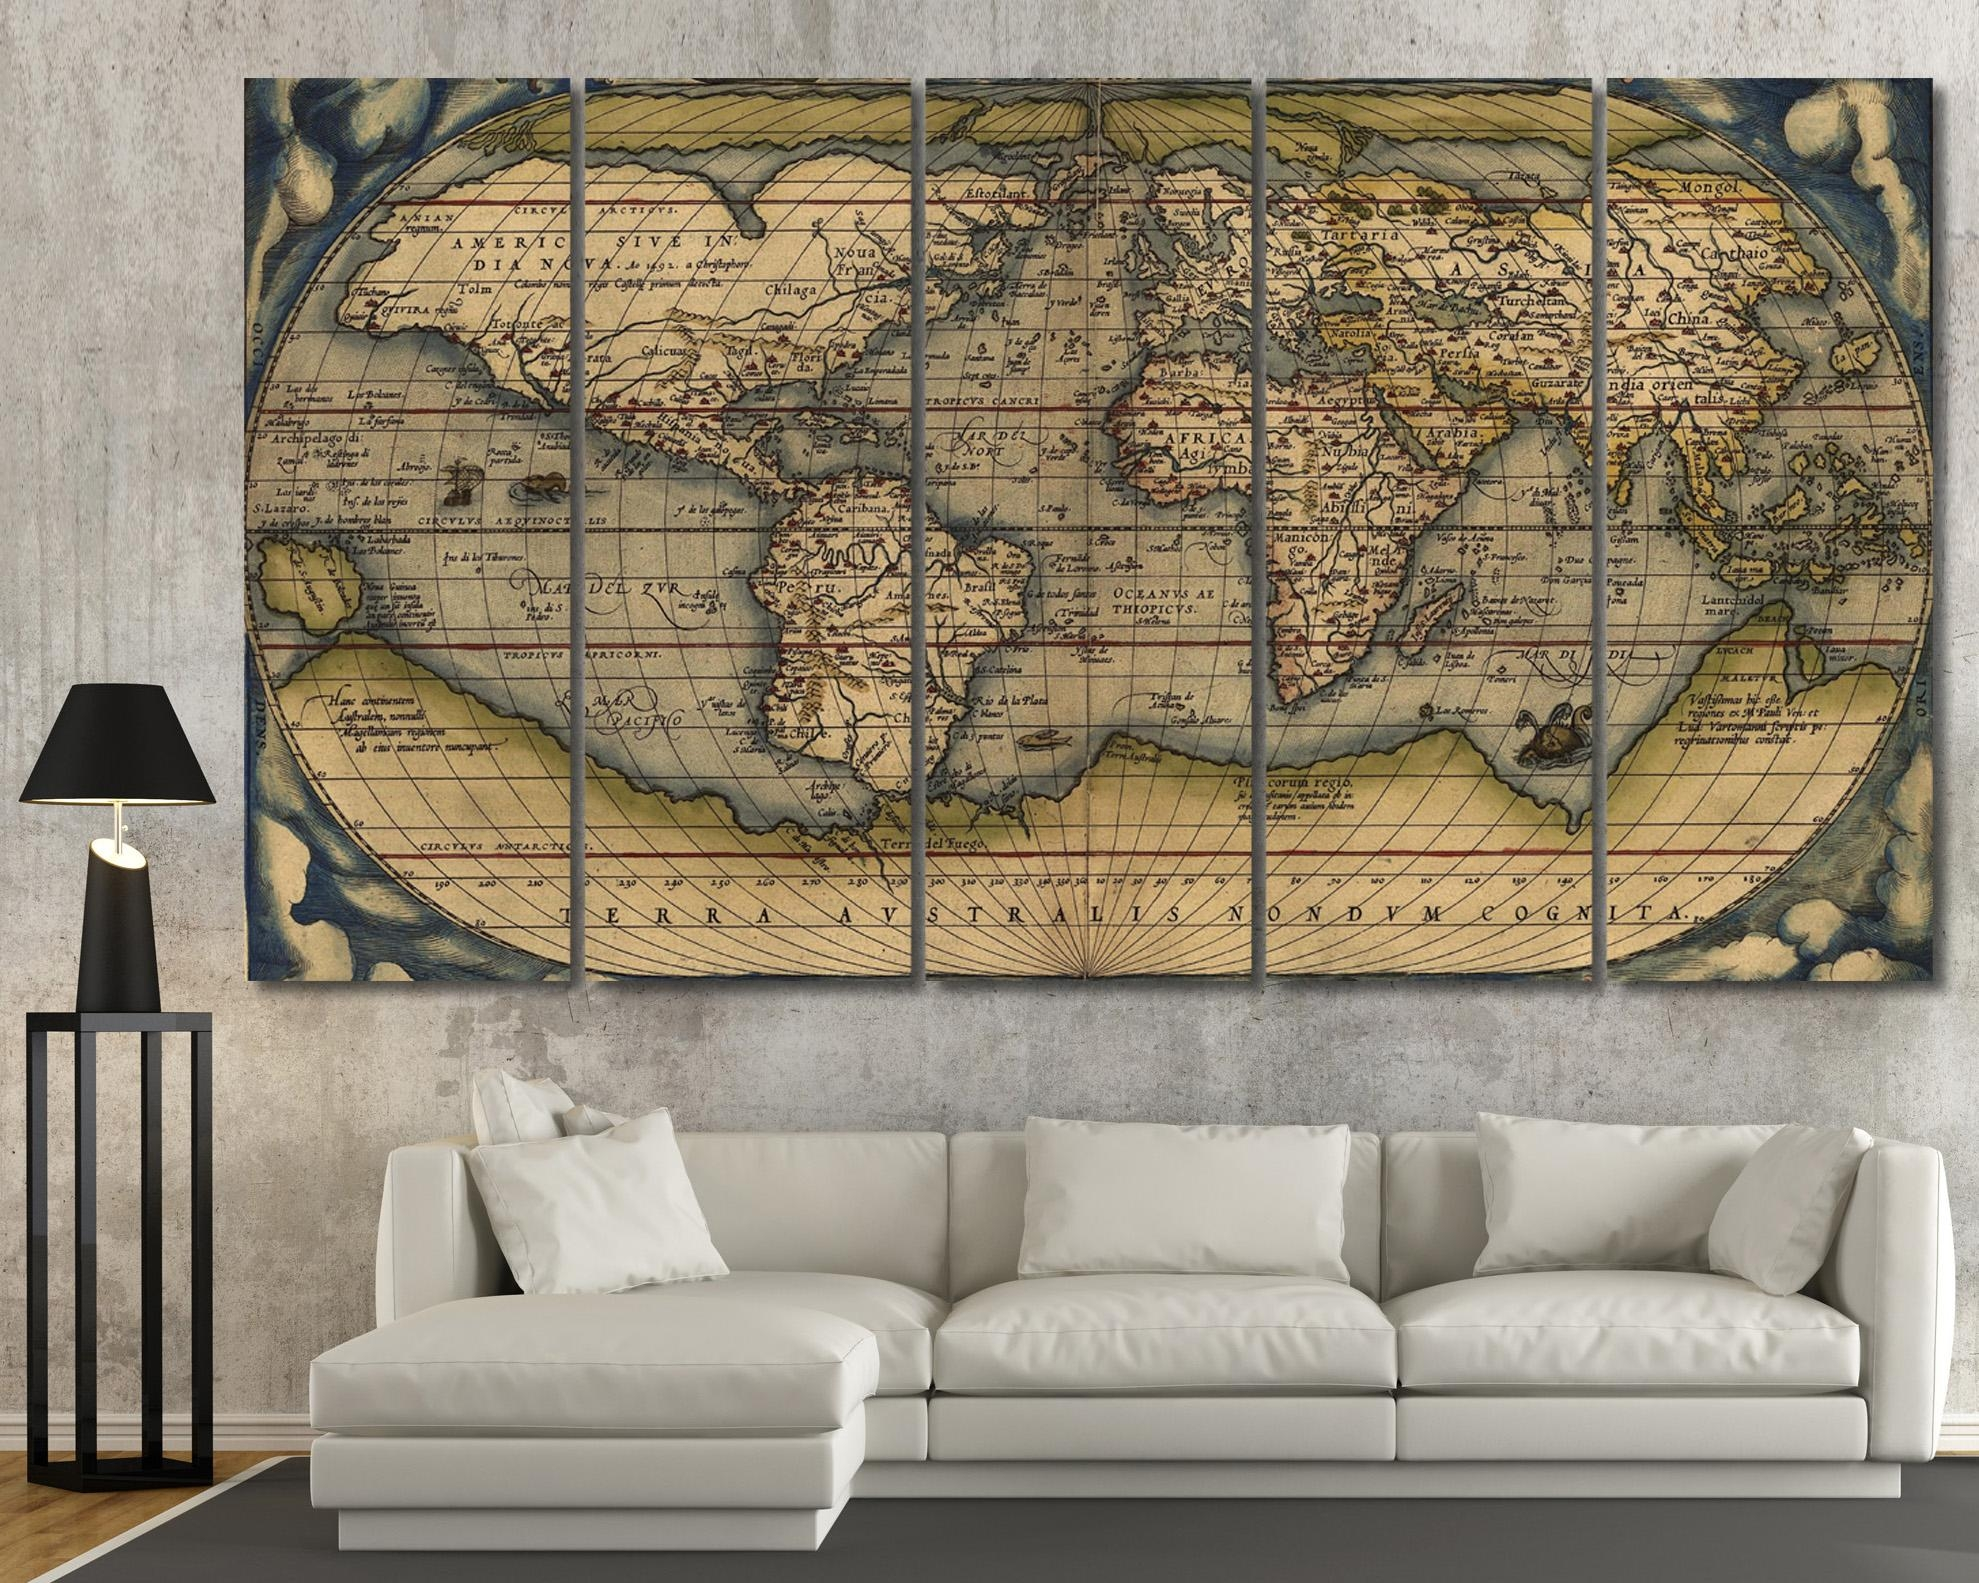 large vintage wall art old world map at regarding antique map wall art image